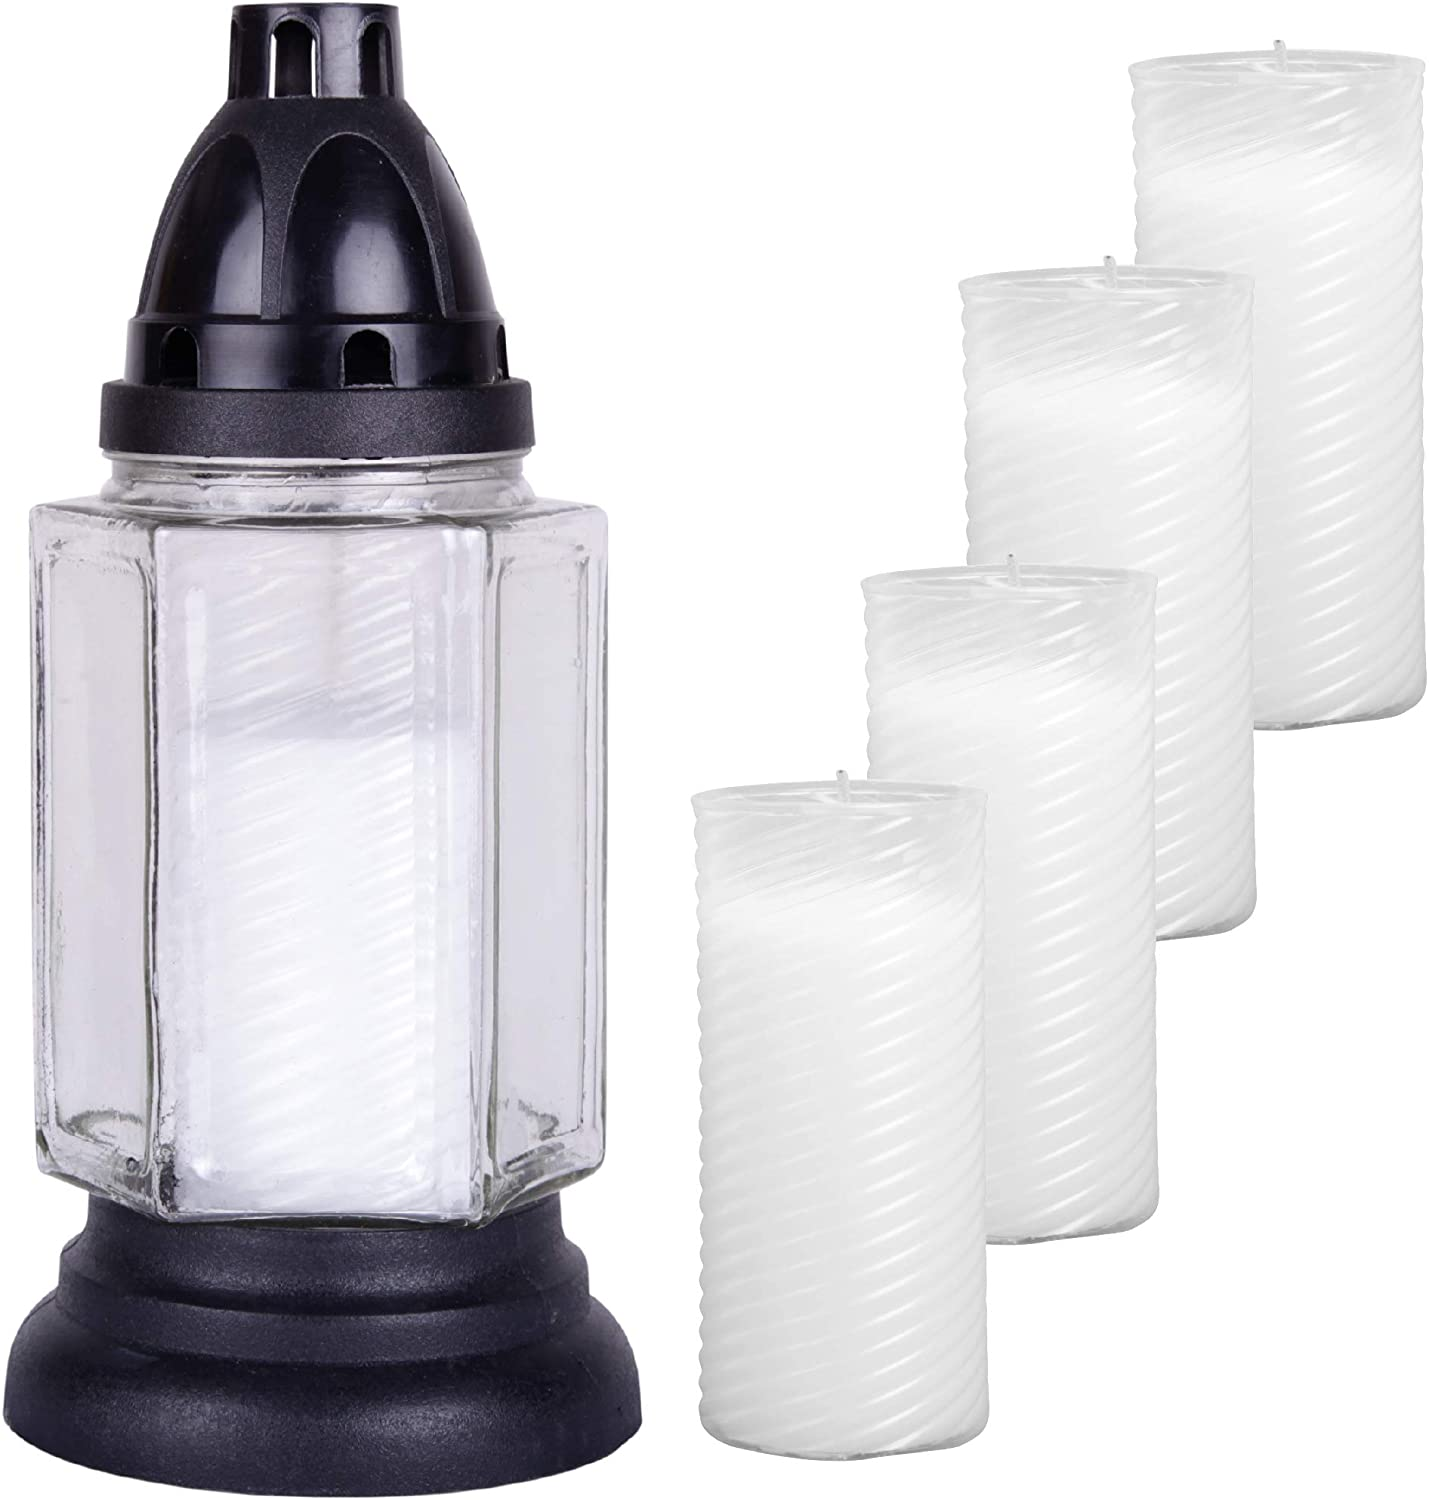 24 cm with 5 refill candles HS Candle Glass Grave Light Approx